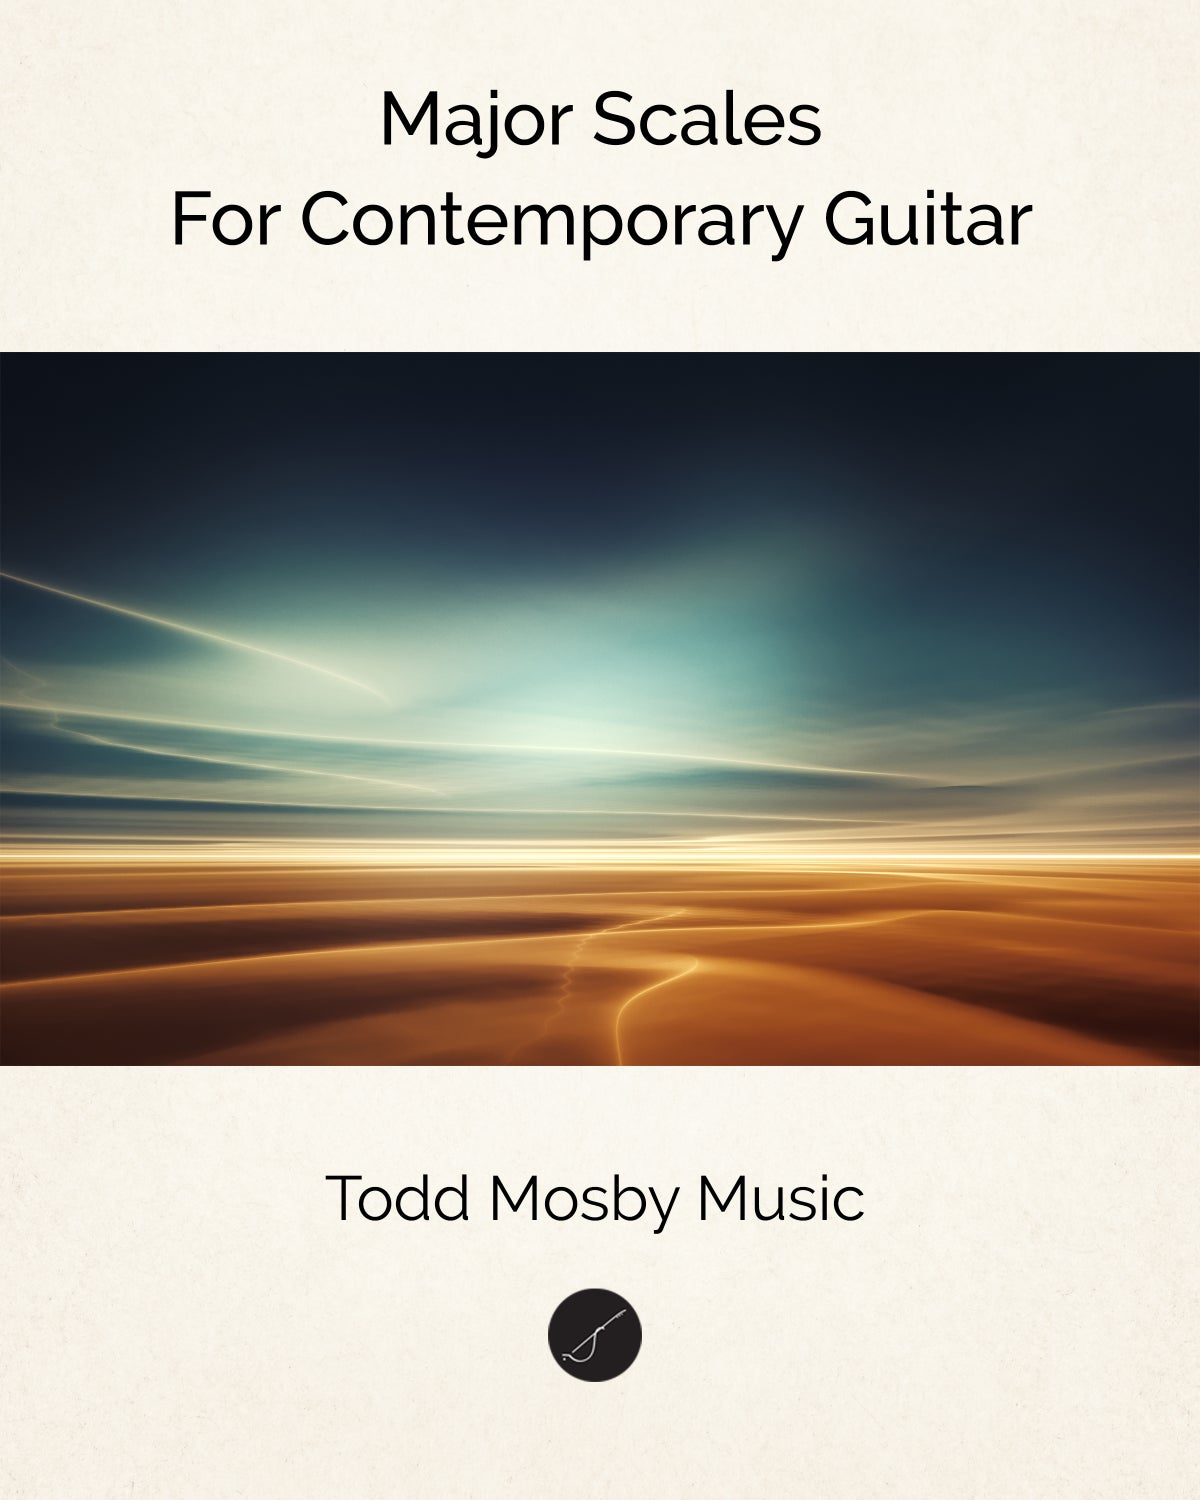 Image of Major Scales For Contemporary Guitar